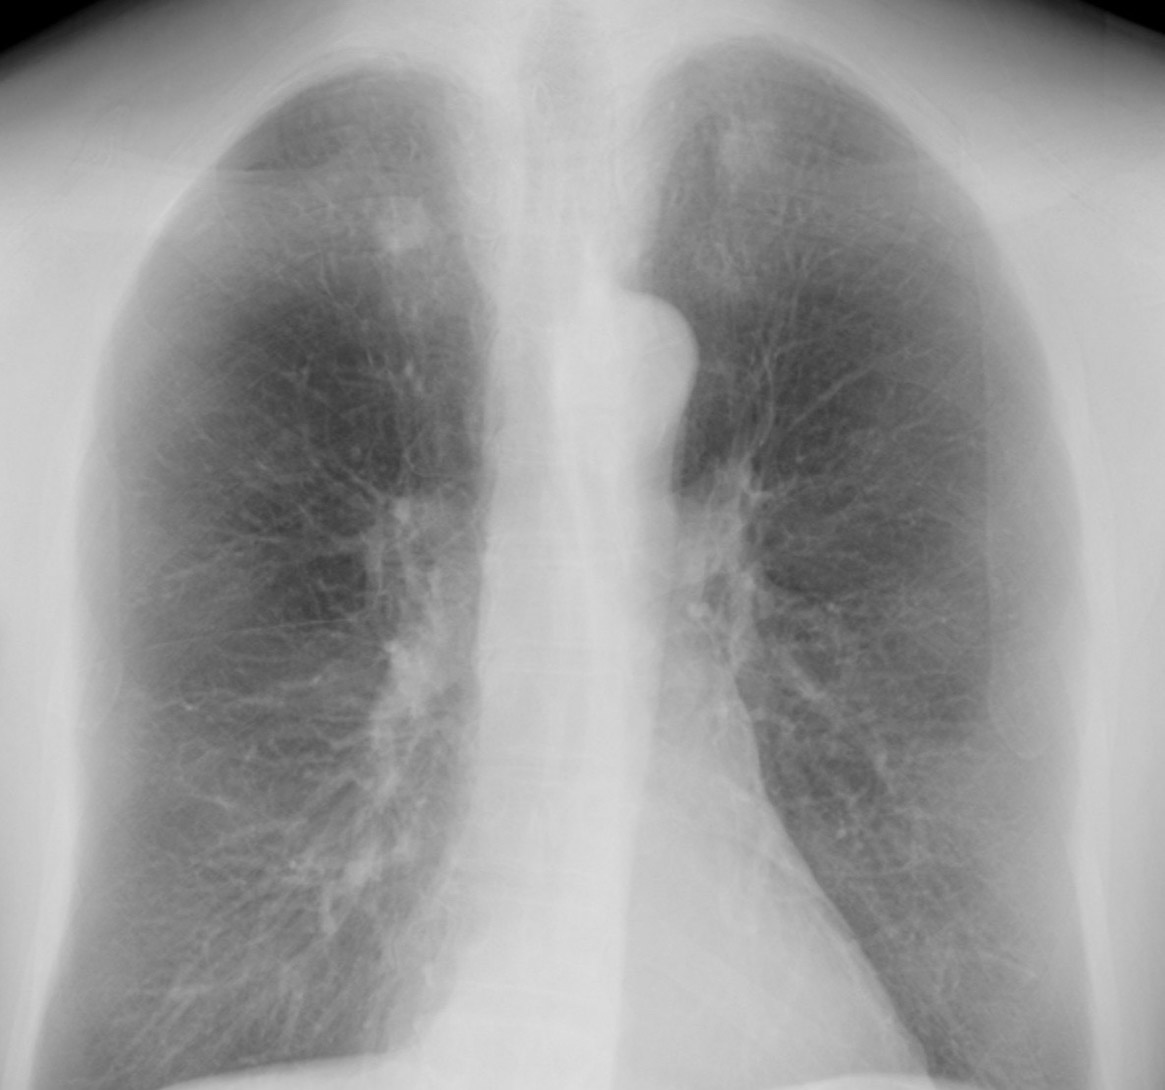 Riverain ClearRead Xray image with rib structure suppressed